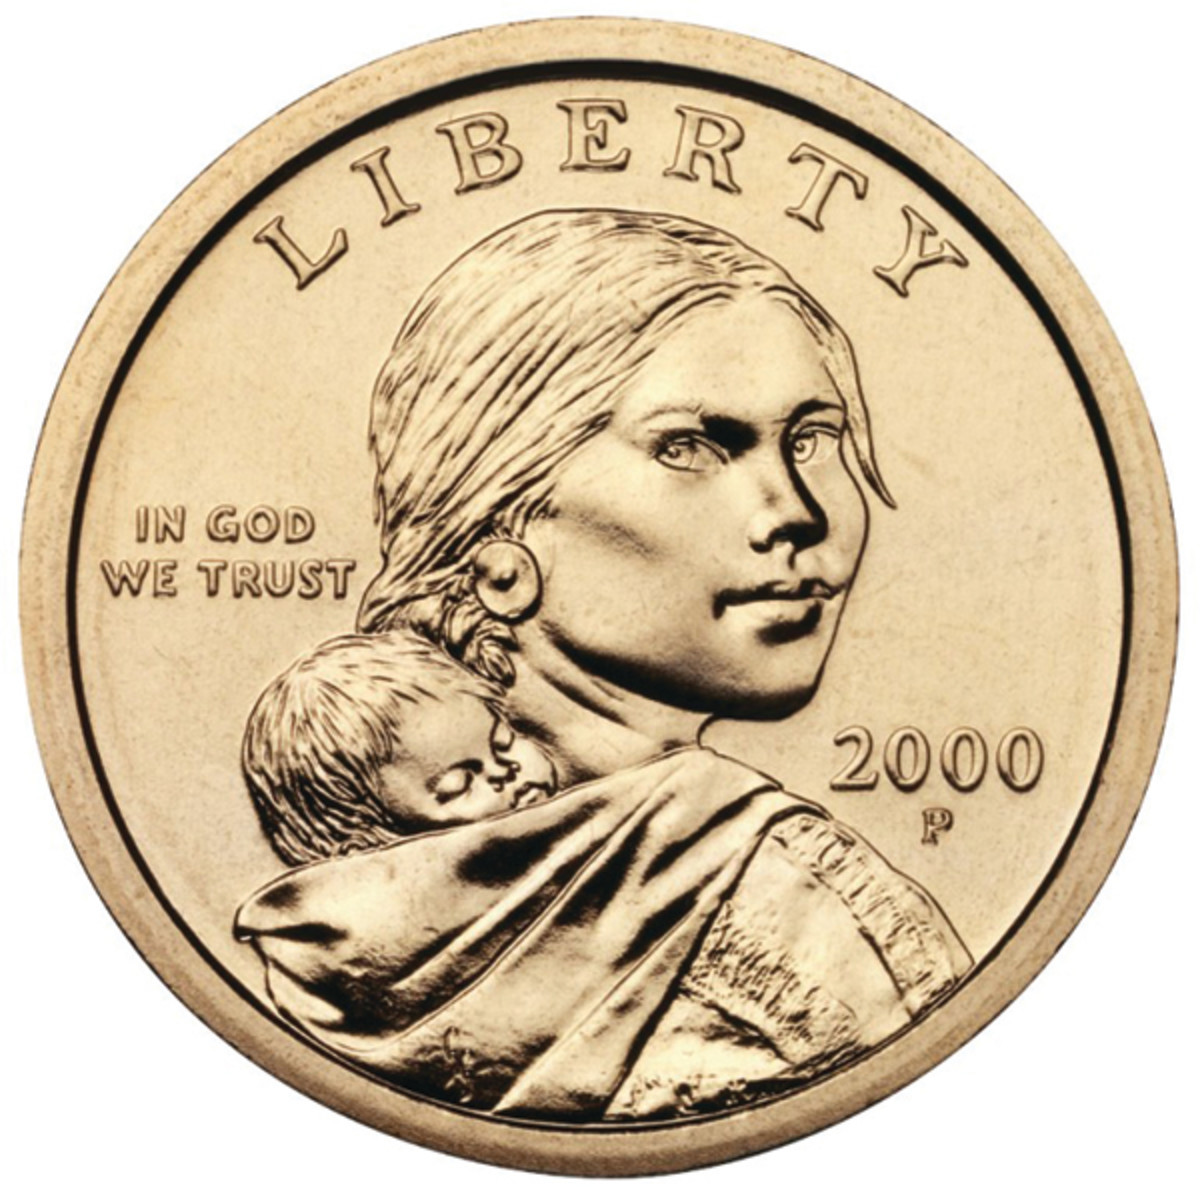 Coin collectors know Goodacre best as designer of the obverse of the Sacagwea dollar.